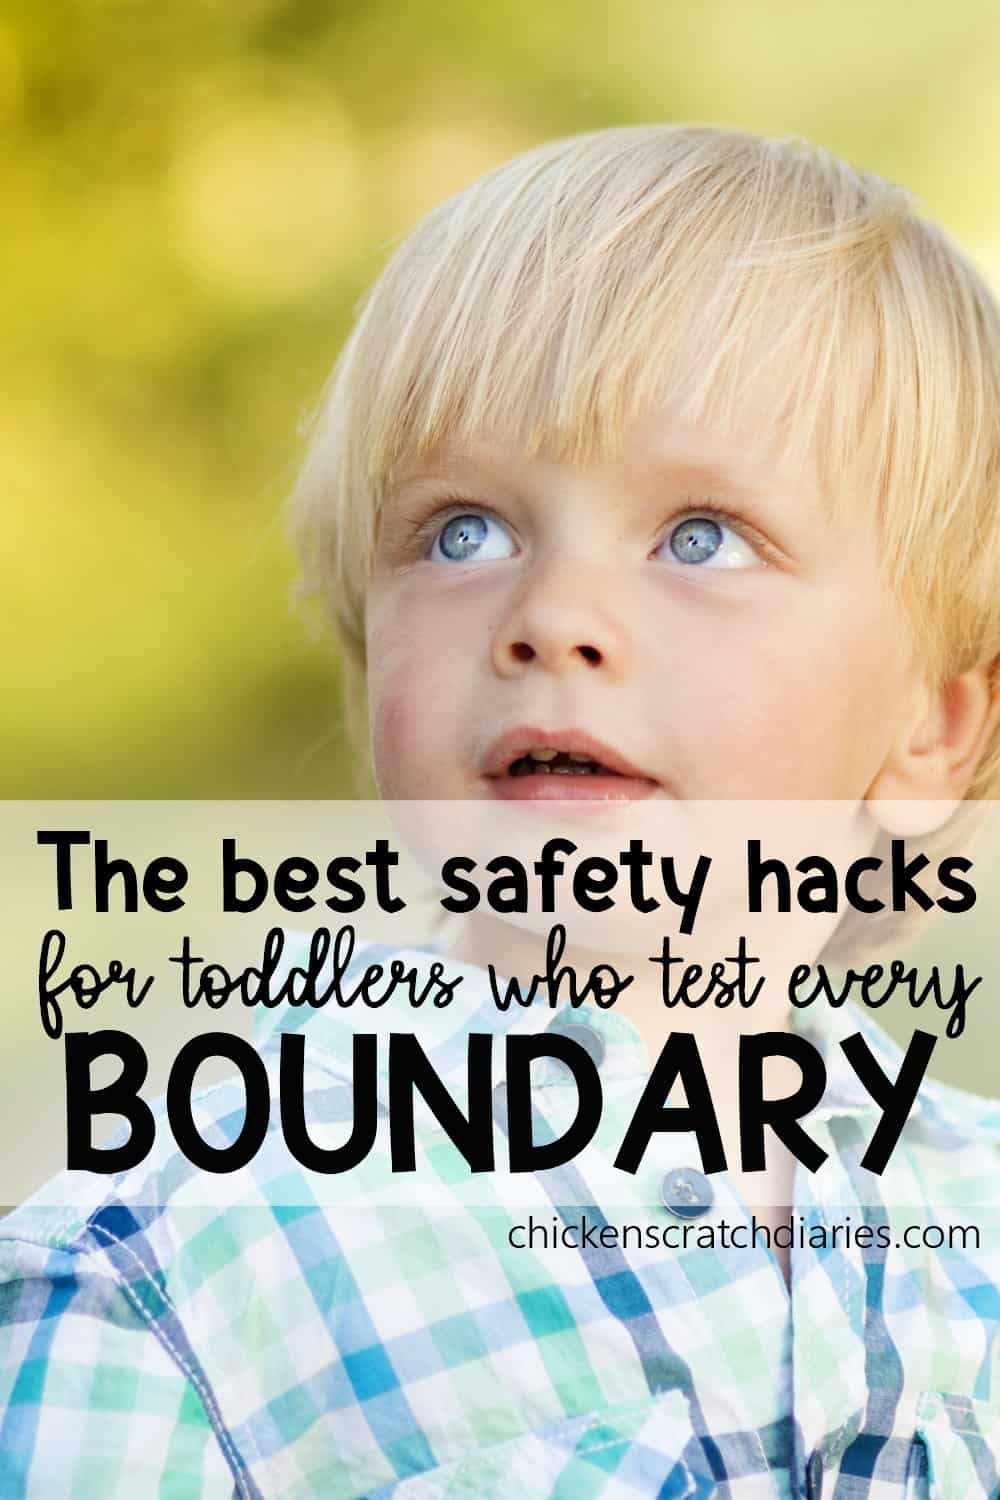 The best safety products for toddlers and babies that can be found on Amazon.